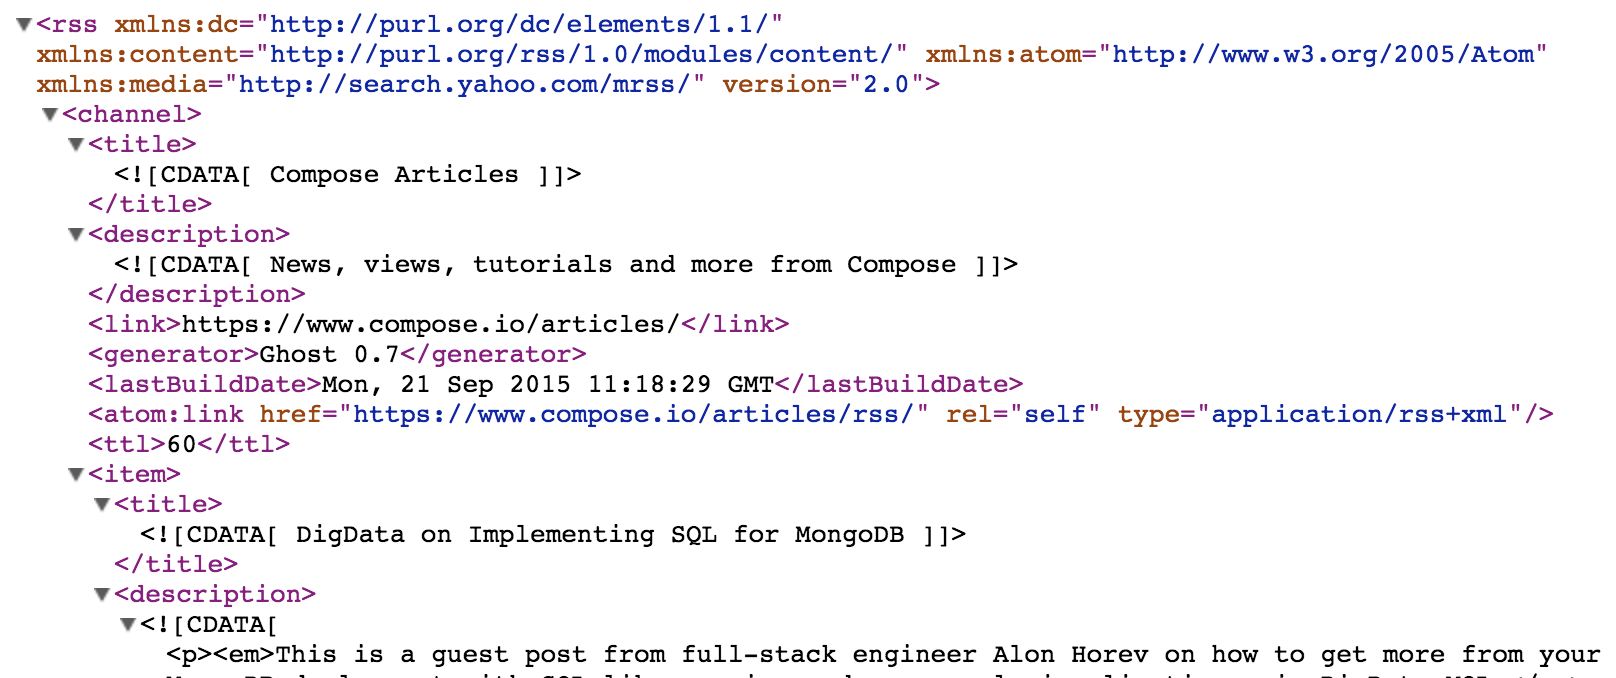 To Go from RSS to Elasticsearch - Compose Articles